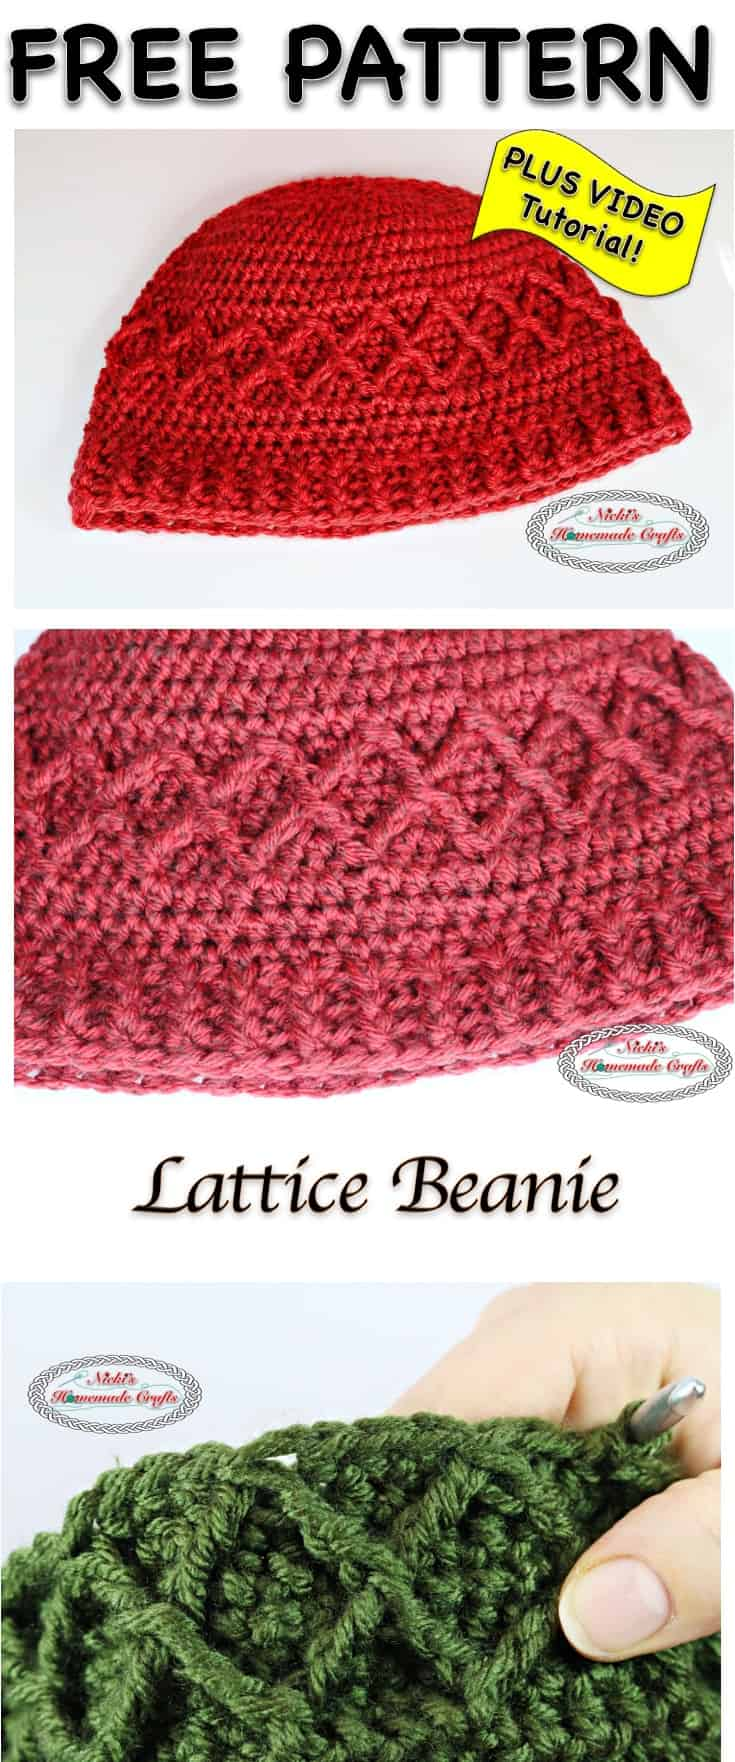 Lattice Beanie - Free Crochet Pattern